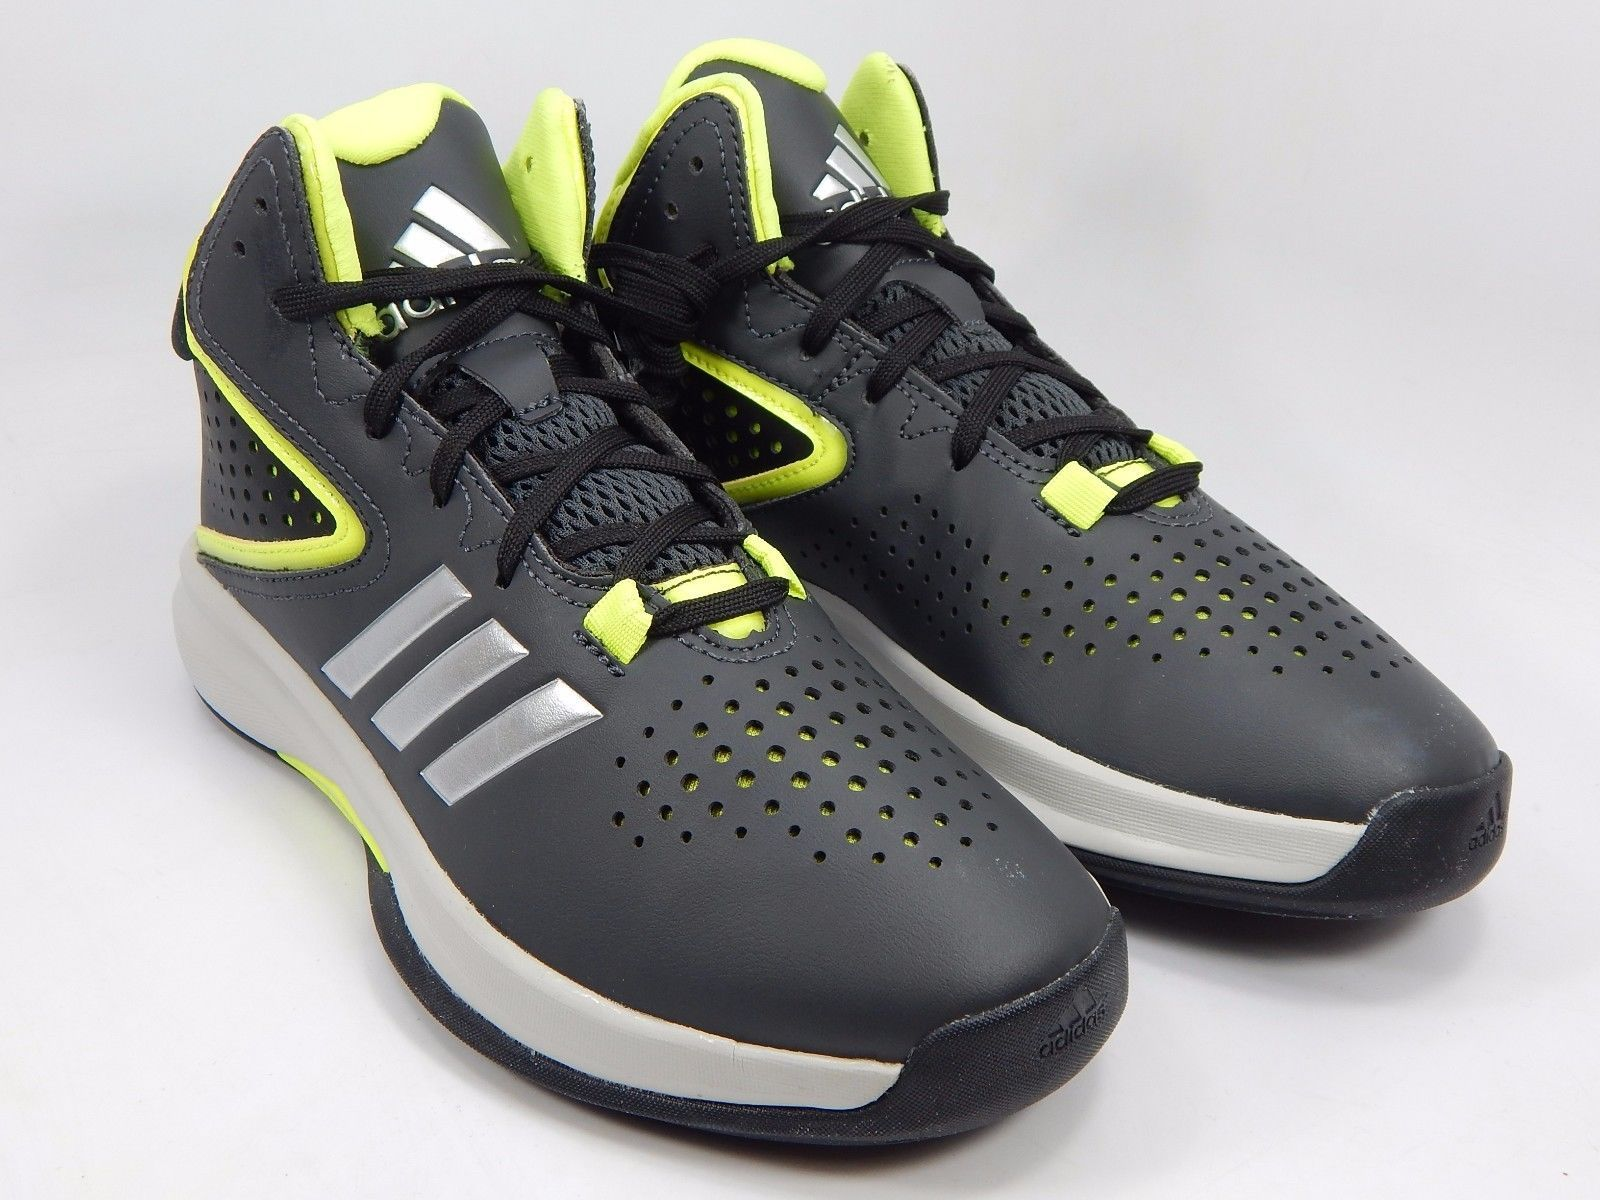 Adidas Cross Em Up 2016 Boy's Men's Basketball Shoes Size US 5.5 Y EU 38 B42787